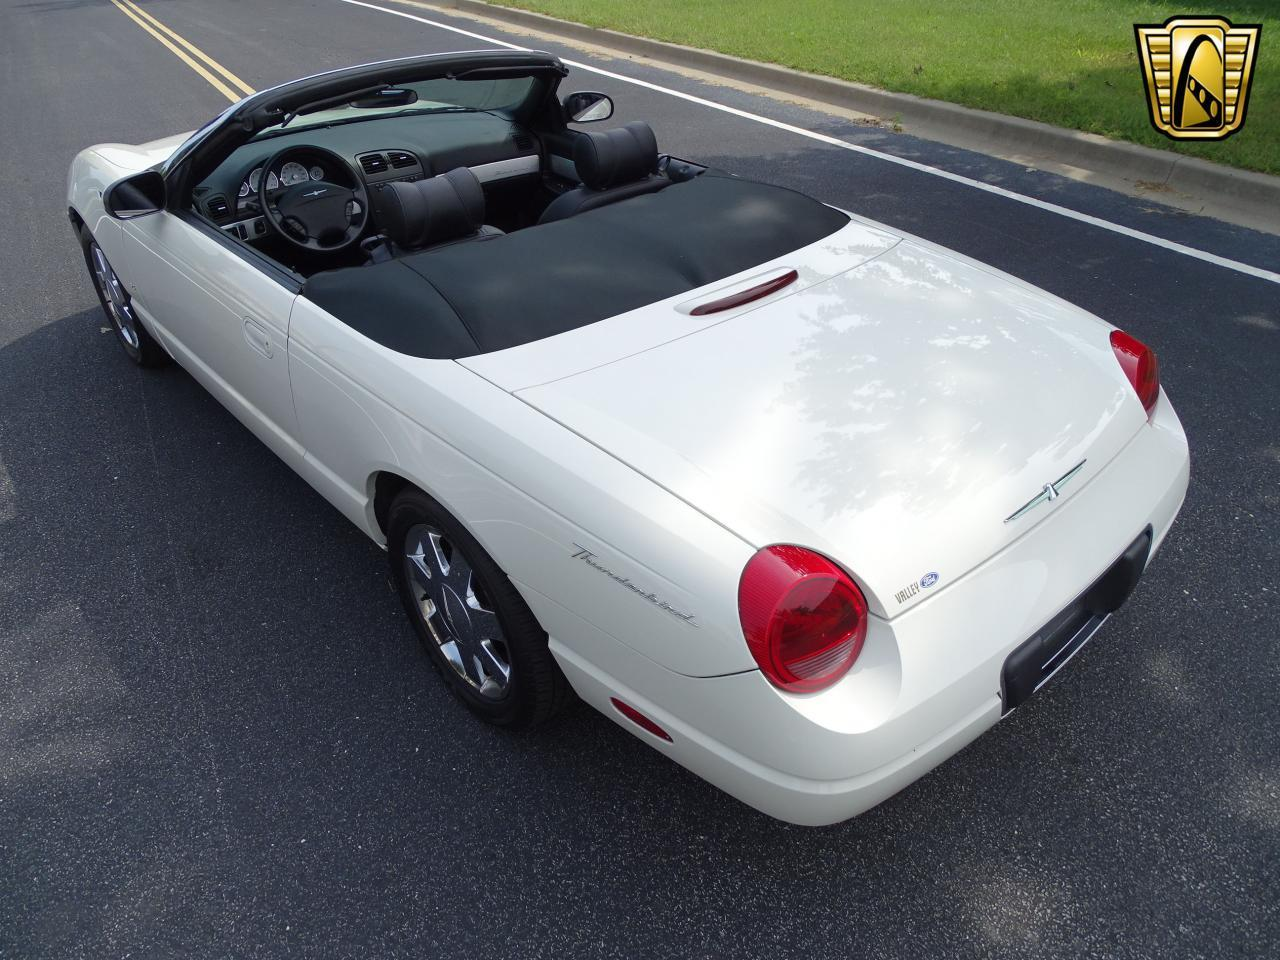 Large Picture of '03 Ford Thunderbird located in Illinois - $13,500.00 Offered by Gateway Classic Cars - St. Louis - QB5Q